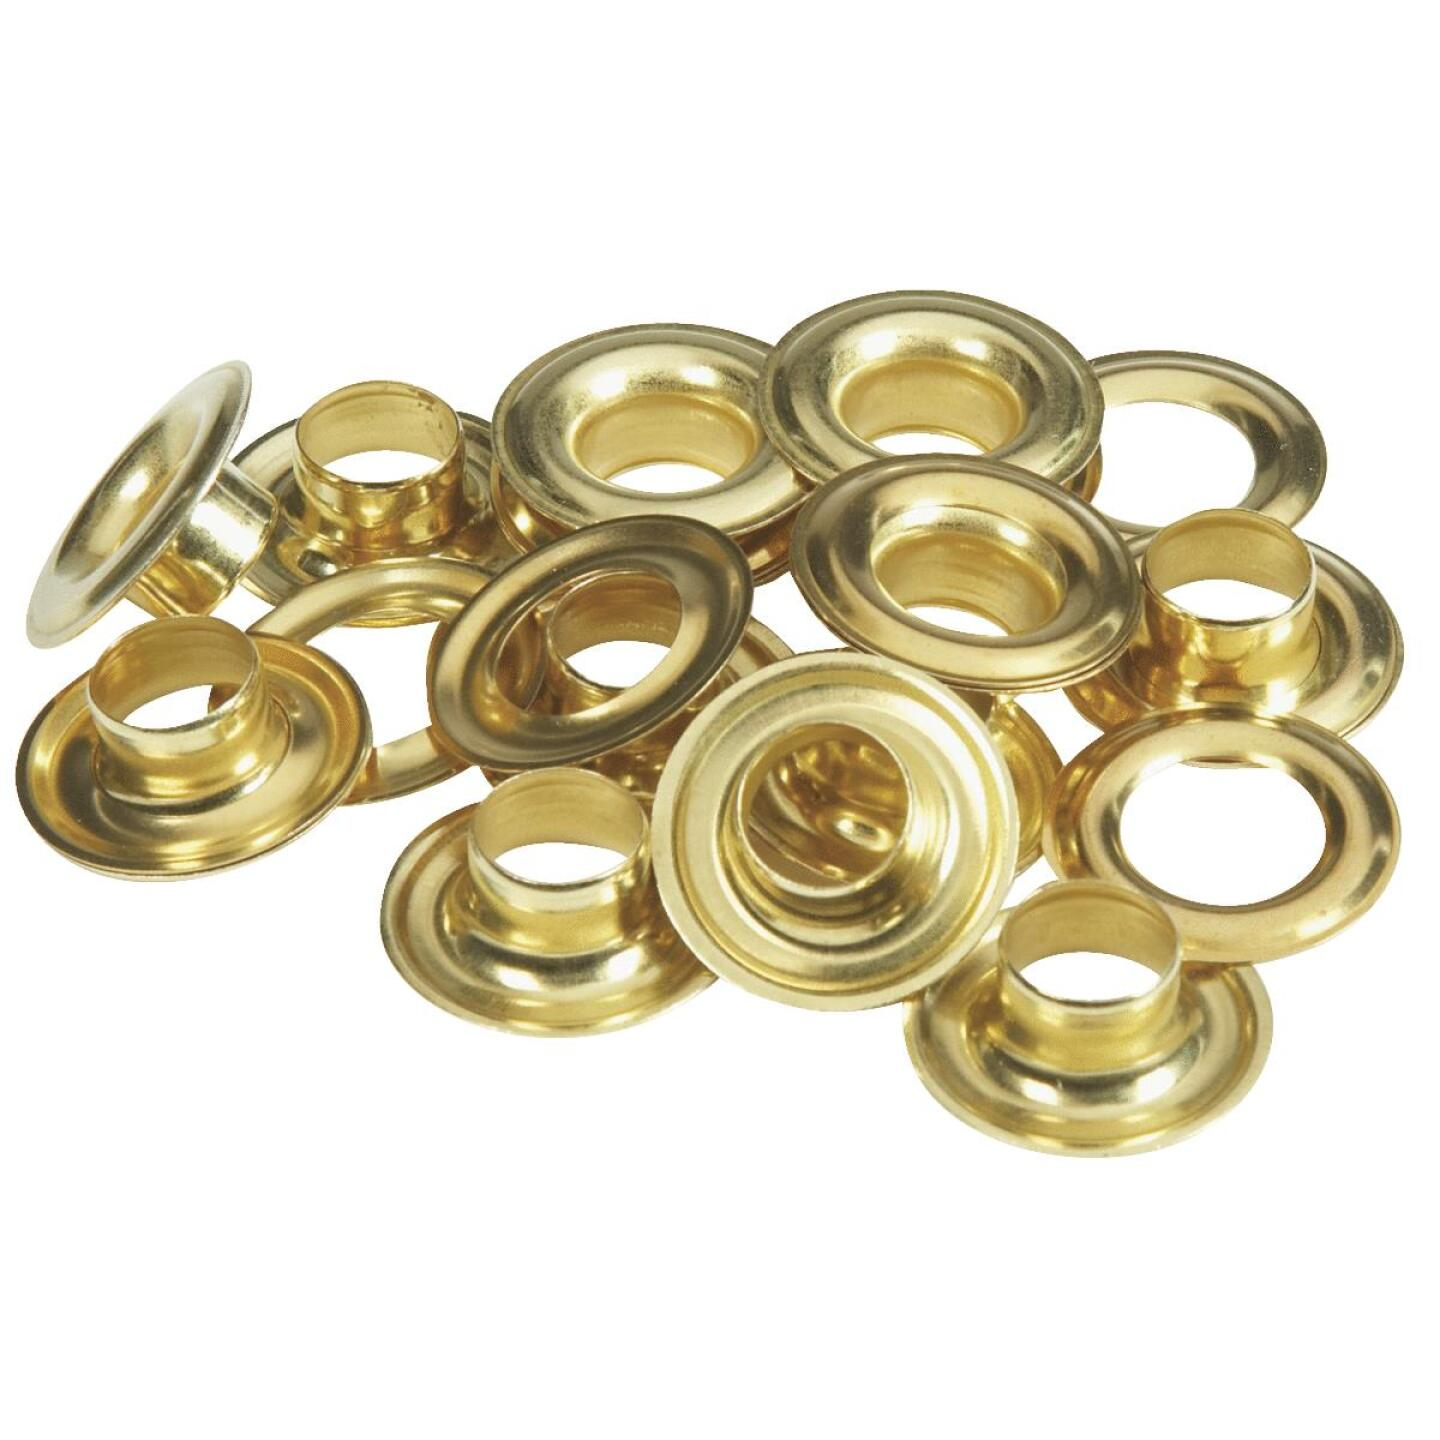 Lord & Hodge 7/16 In. Brass Grommet Refills (12 Ct.) Image 1